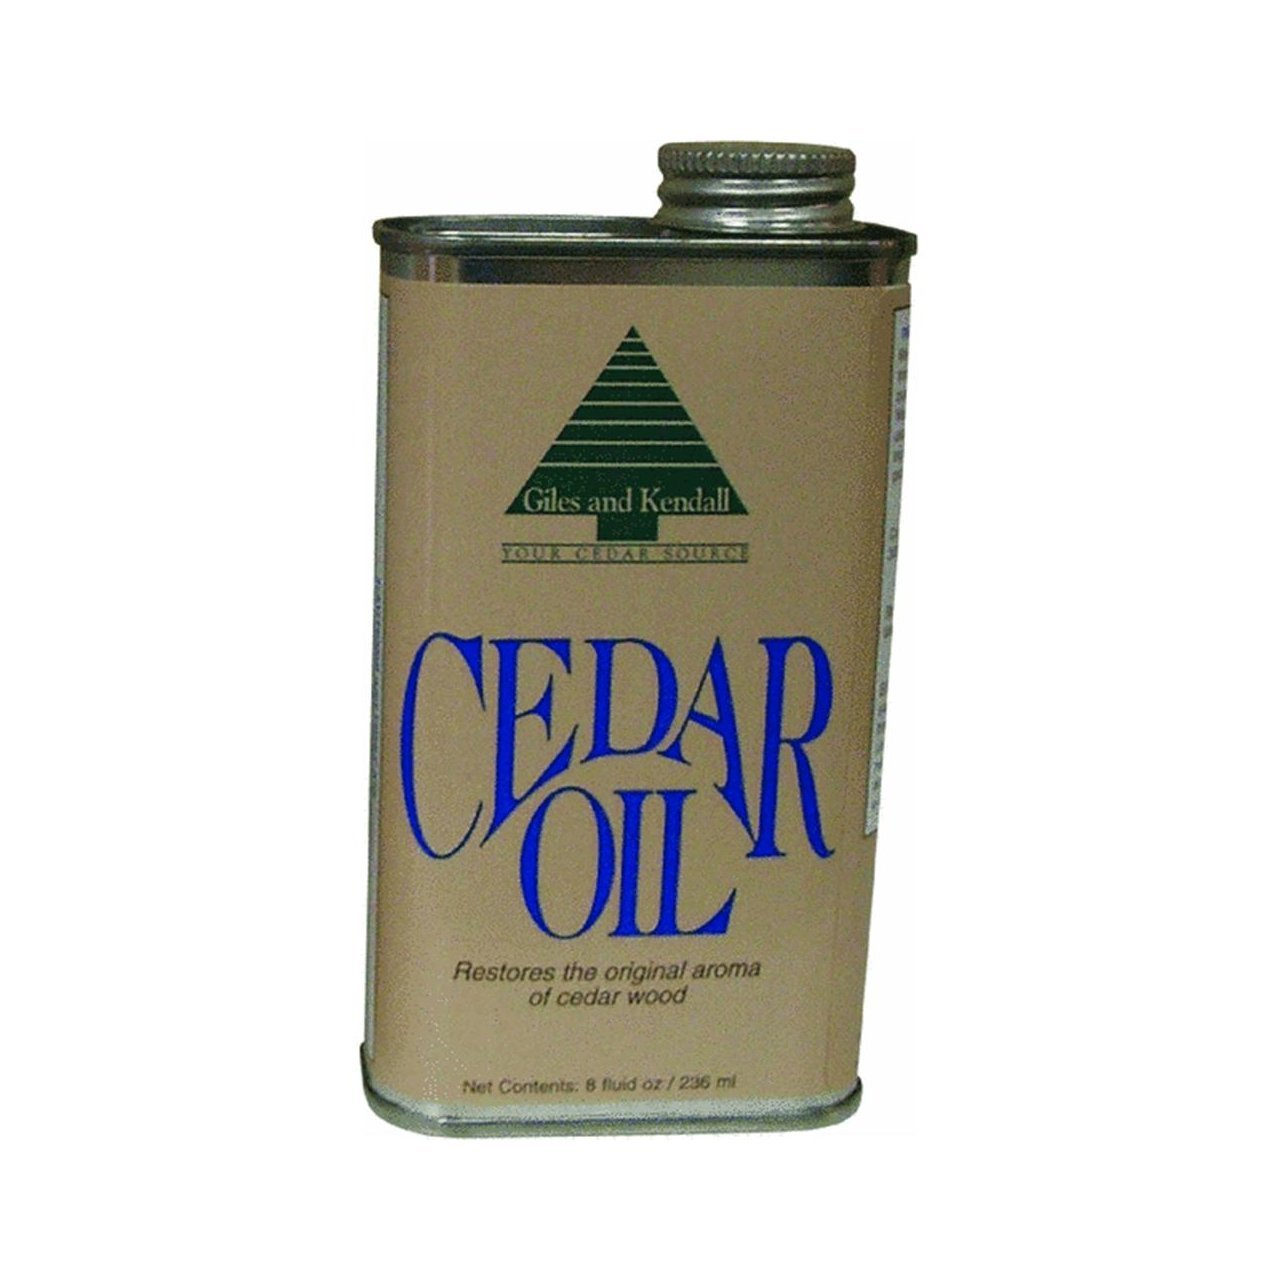 Giles and Kendall Cedar Oil Restores the Original Aroma of Cedar Wood, 8 Fluid oz / 236 ml - 2 Pack